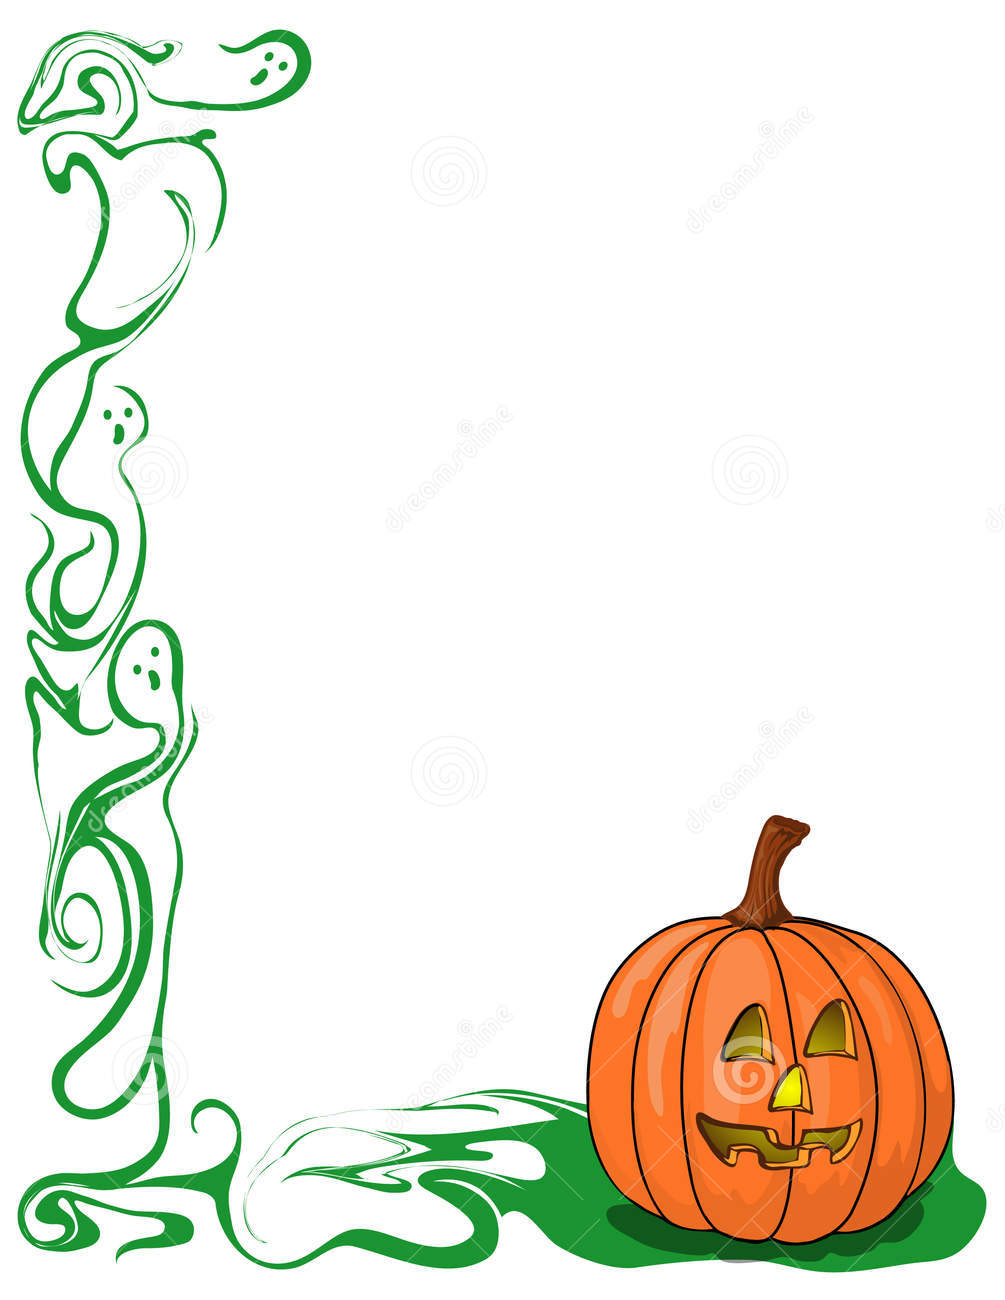 Pumpkin And Ghost Border Royalty Free Stock Images Image 9